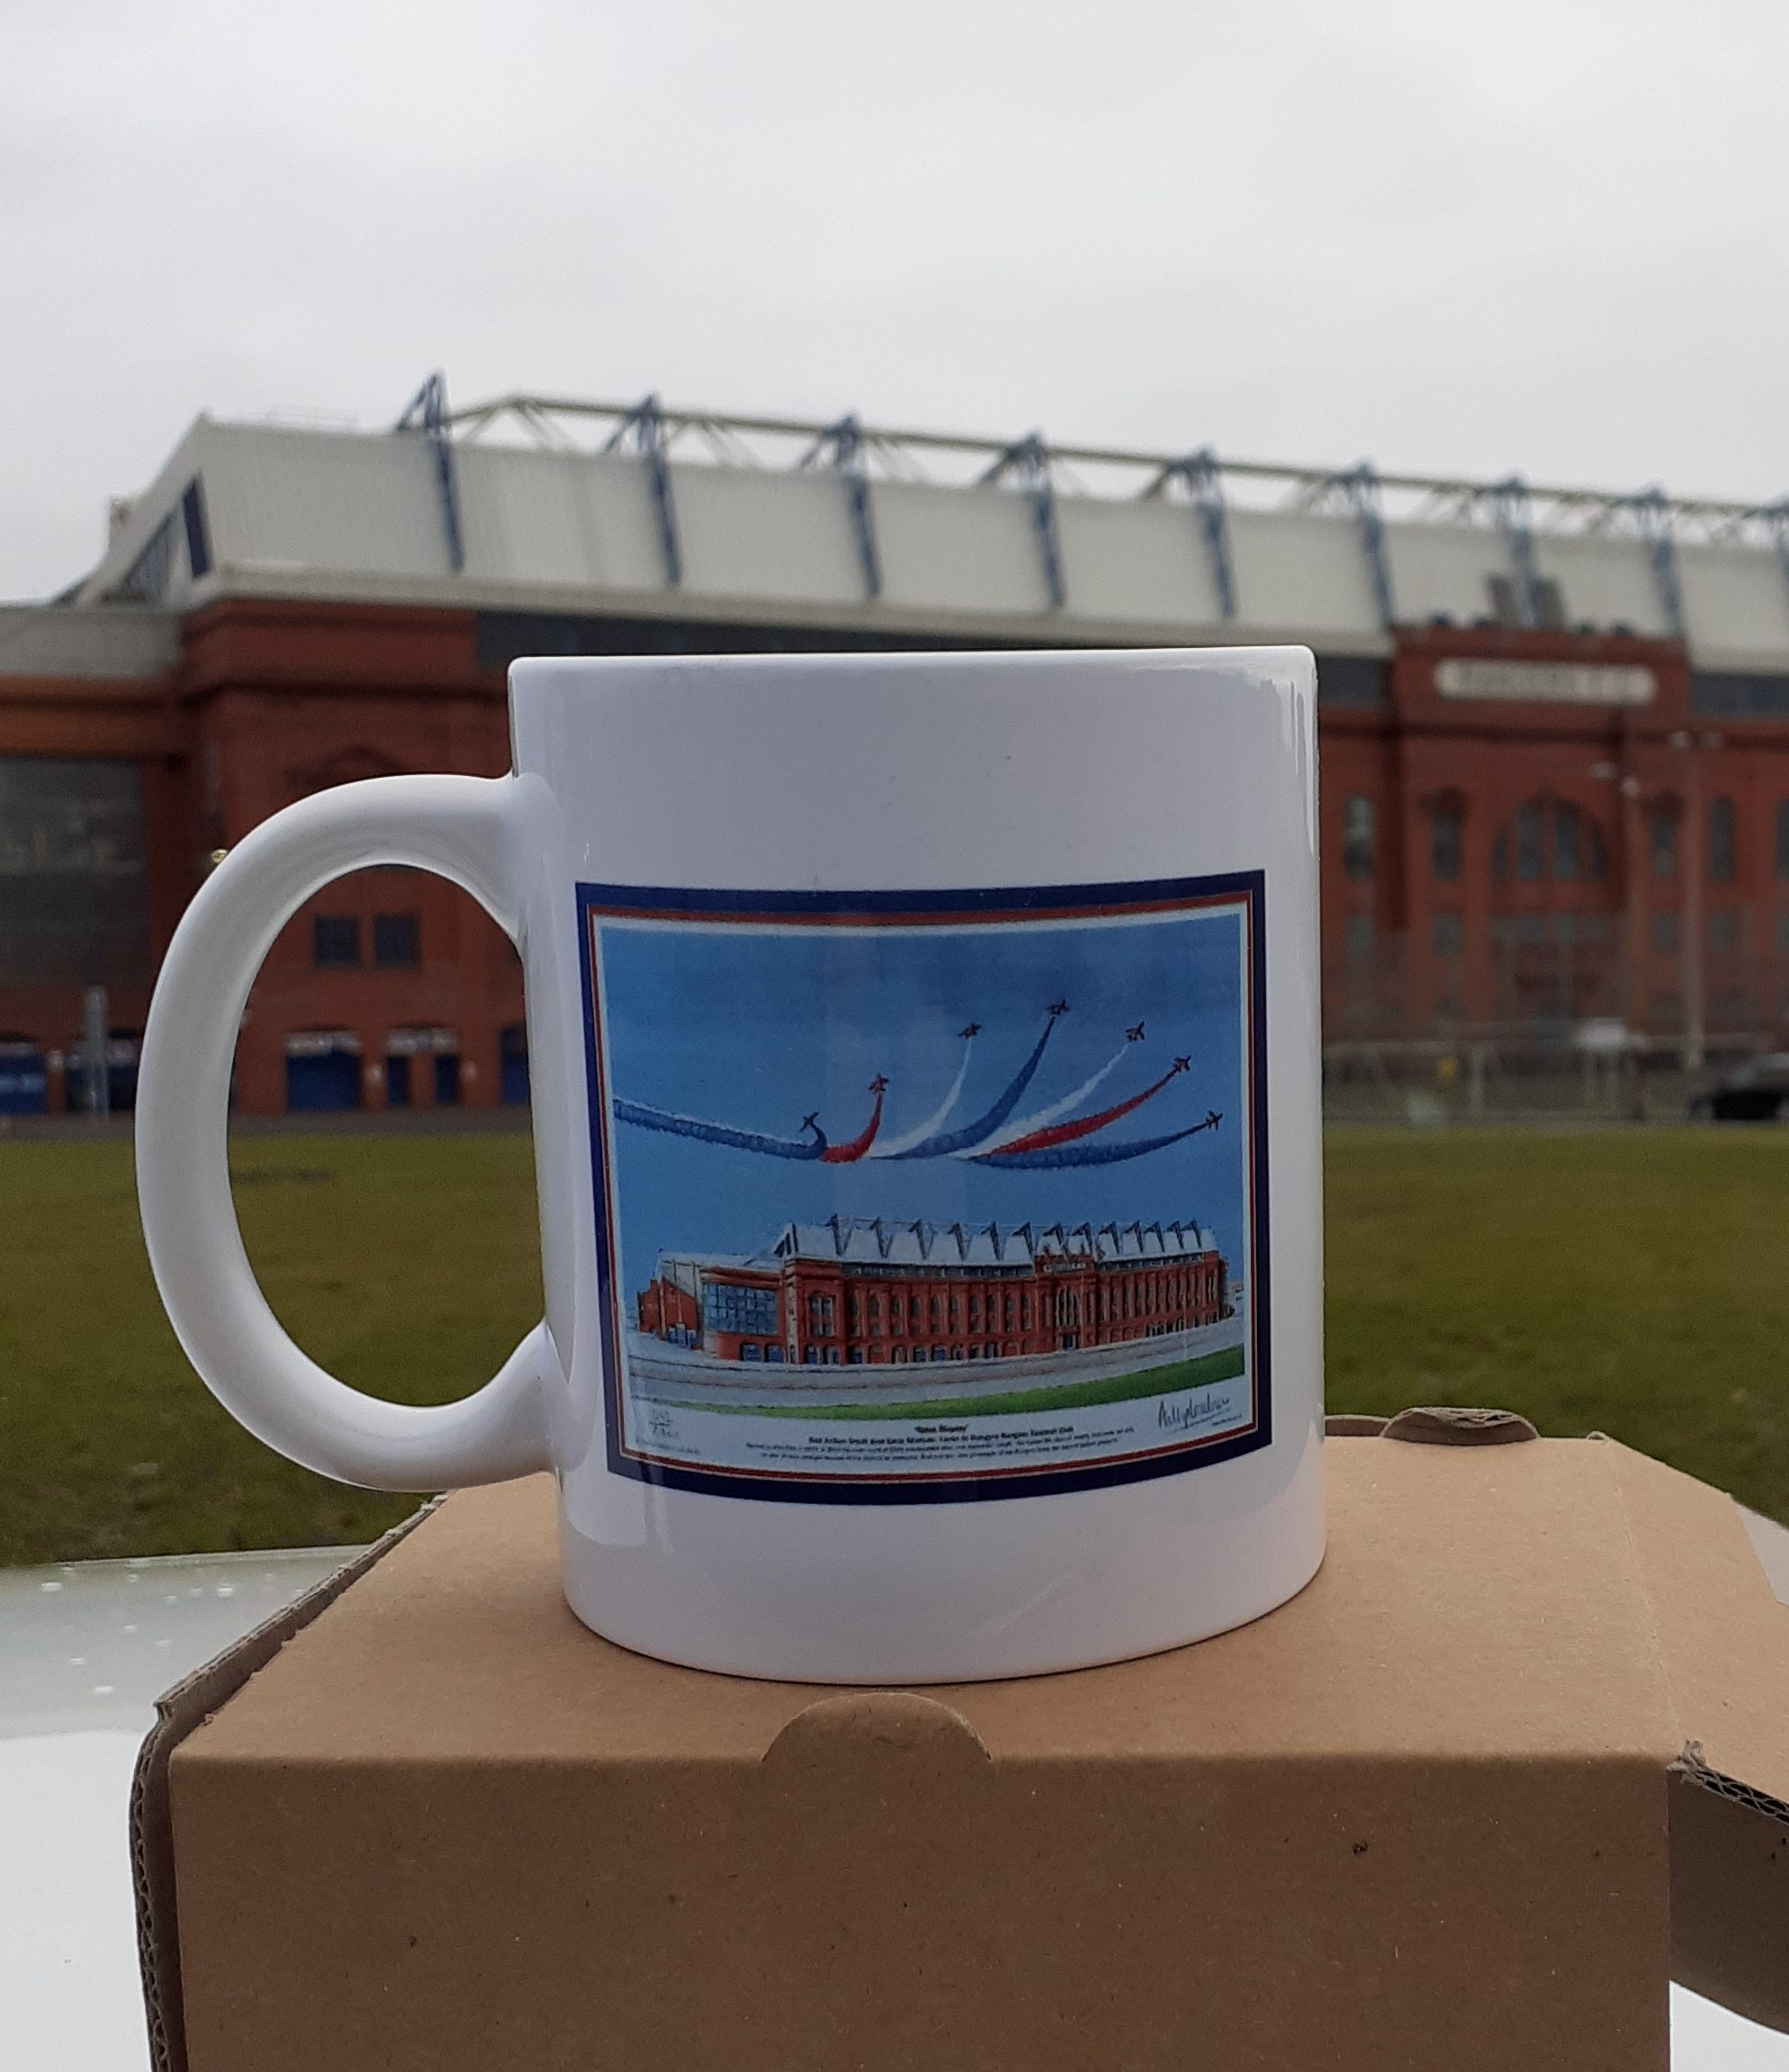 'Watching Over'/'Ibrox Display' Rangers FC coffee mug